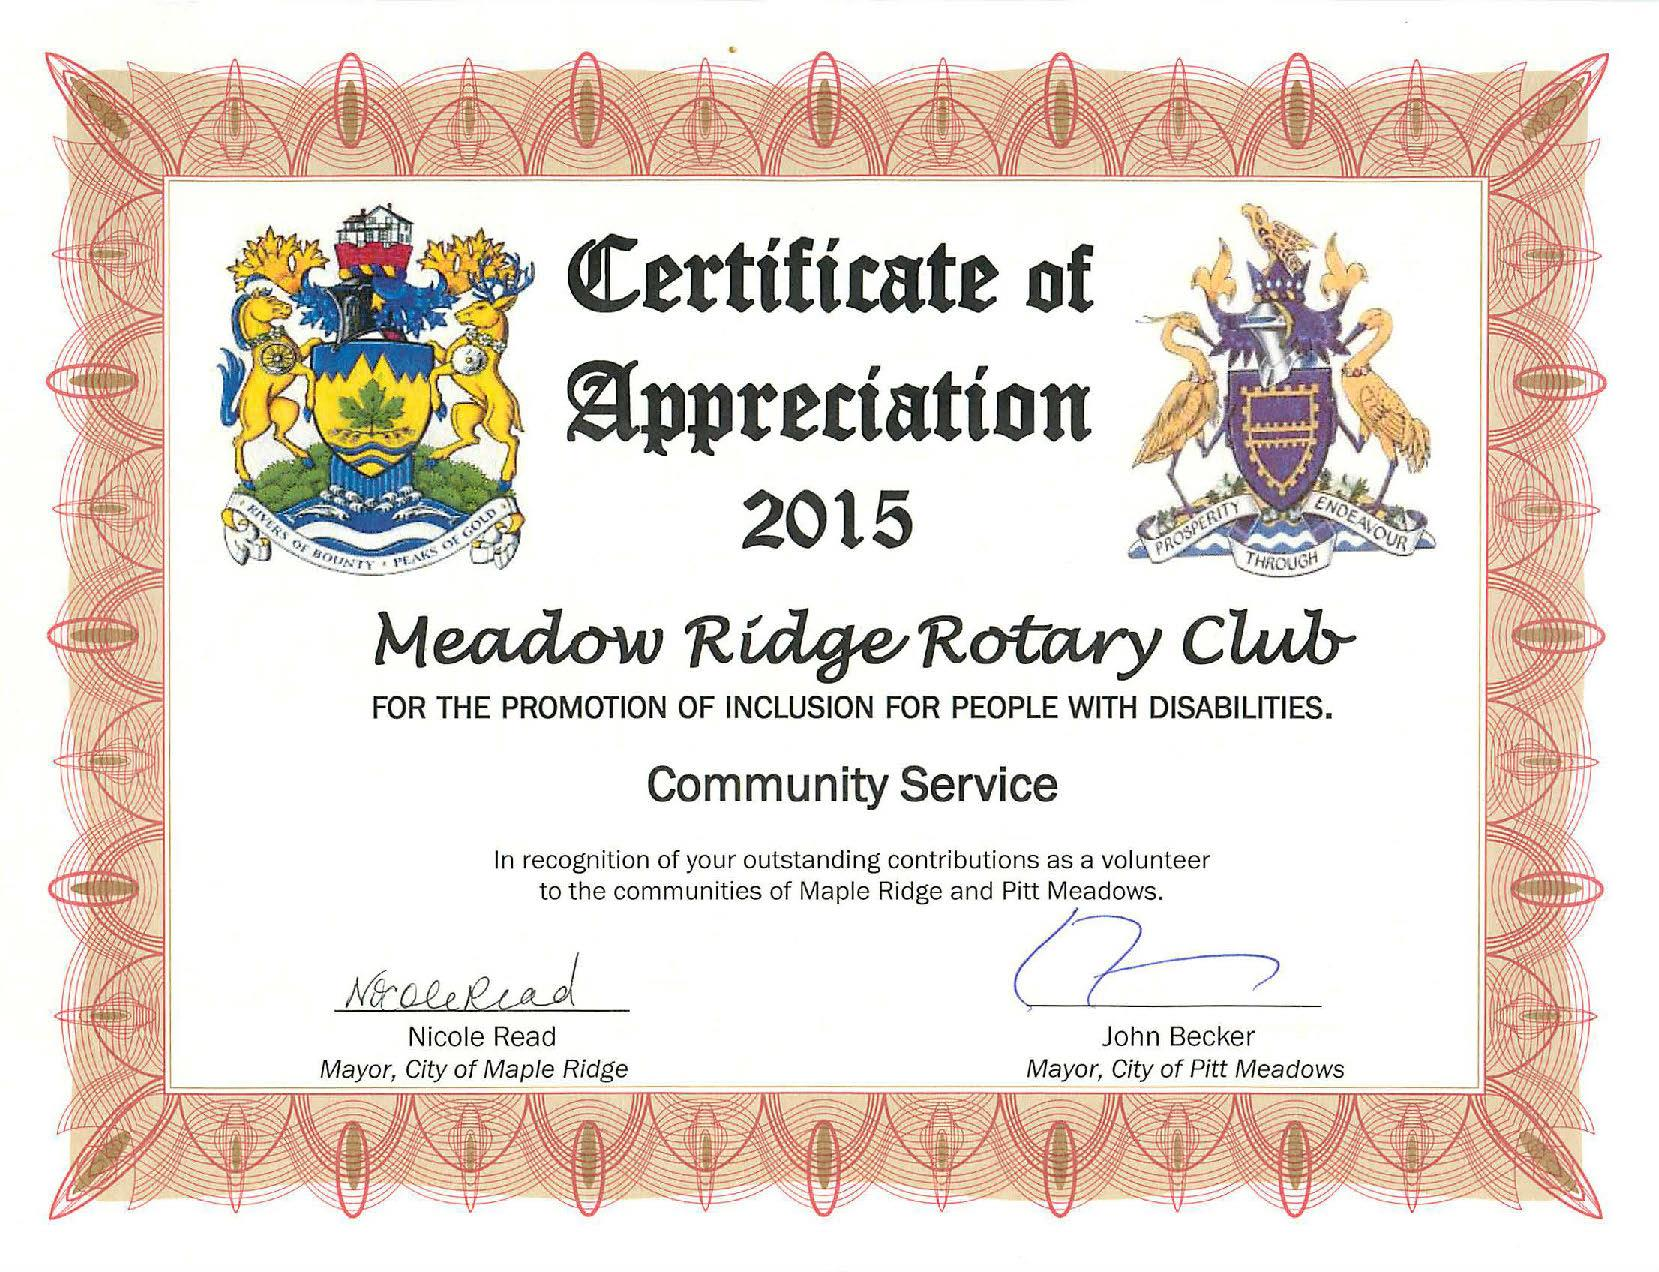 Home Page Rotary Club Of Meadow Ridge